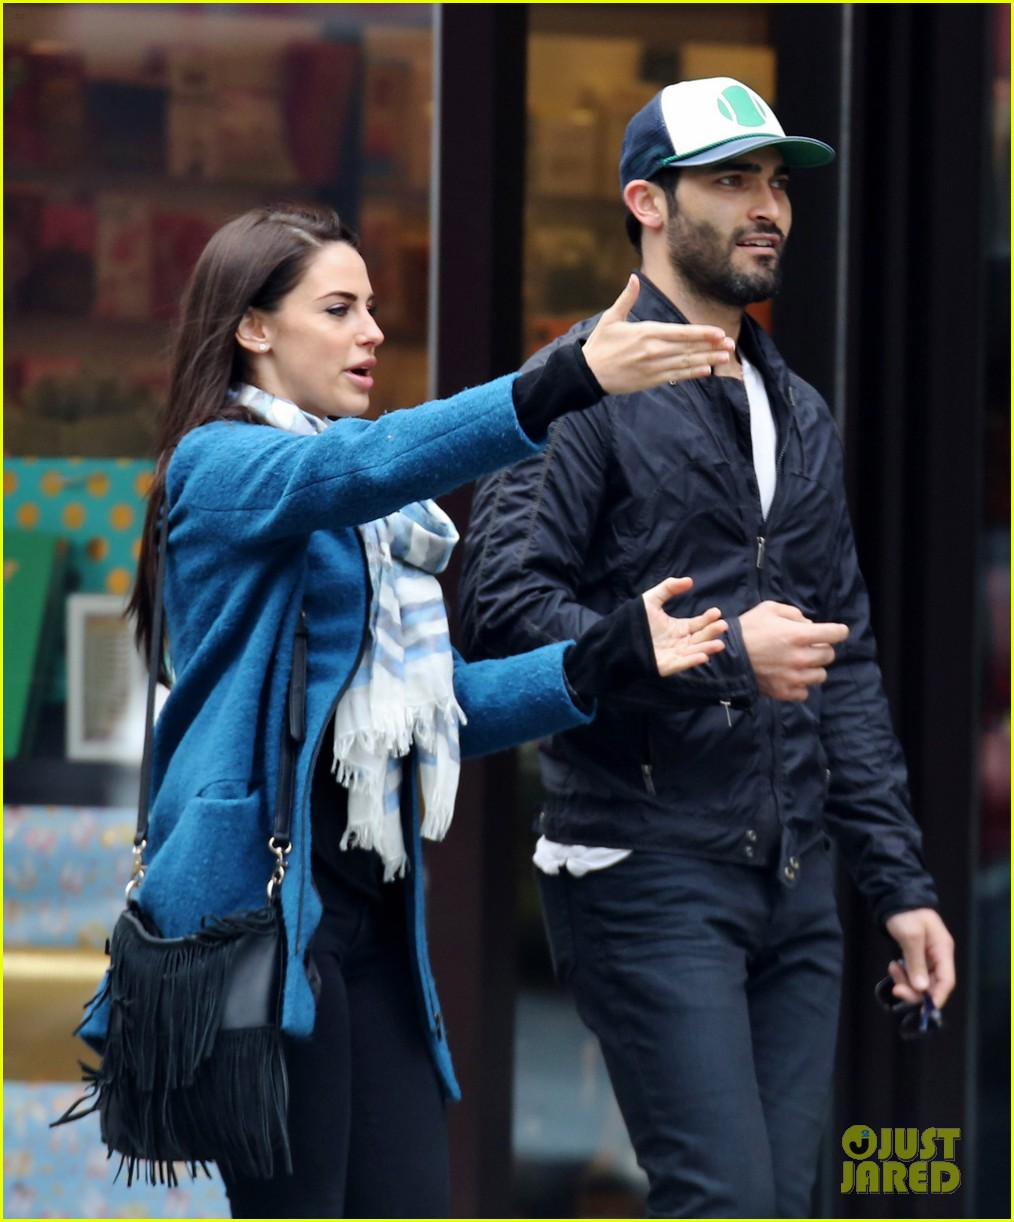 tyler hoechlin jessica lowndes brant daughtery vancouver 50 shades 04